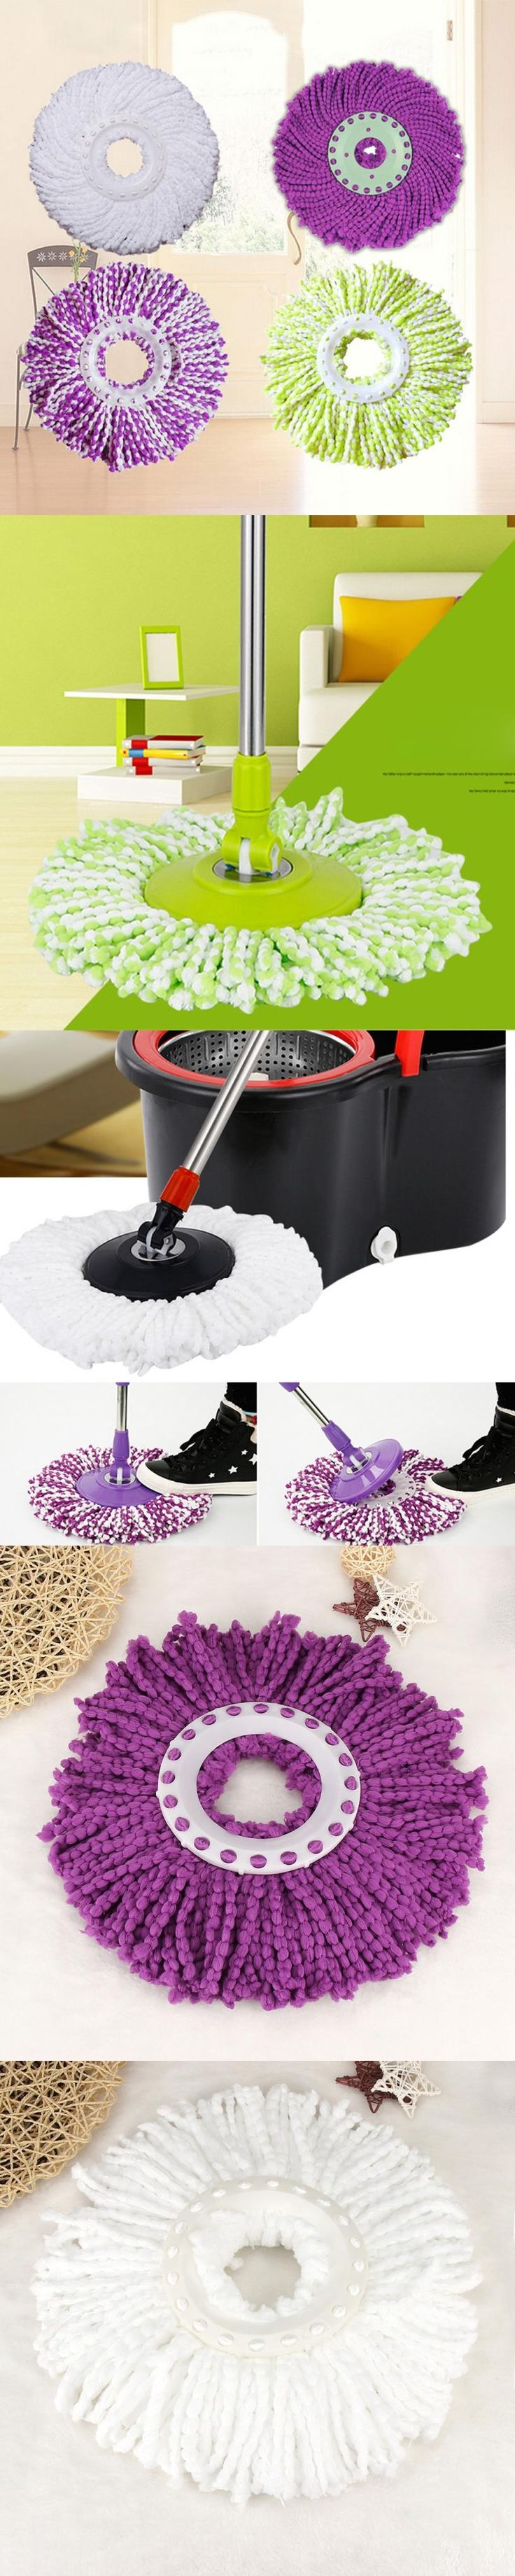 Mop  New Replacement 360 Rotating Head Easy Magic Microfiber Spinning Floor Mop Head  floor cheaning     11.22